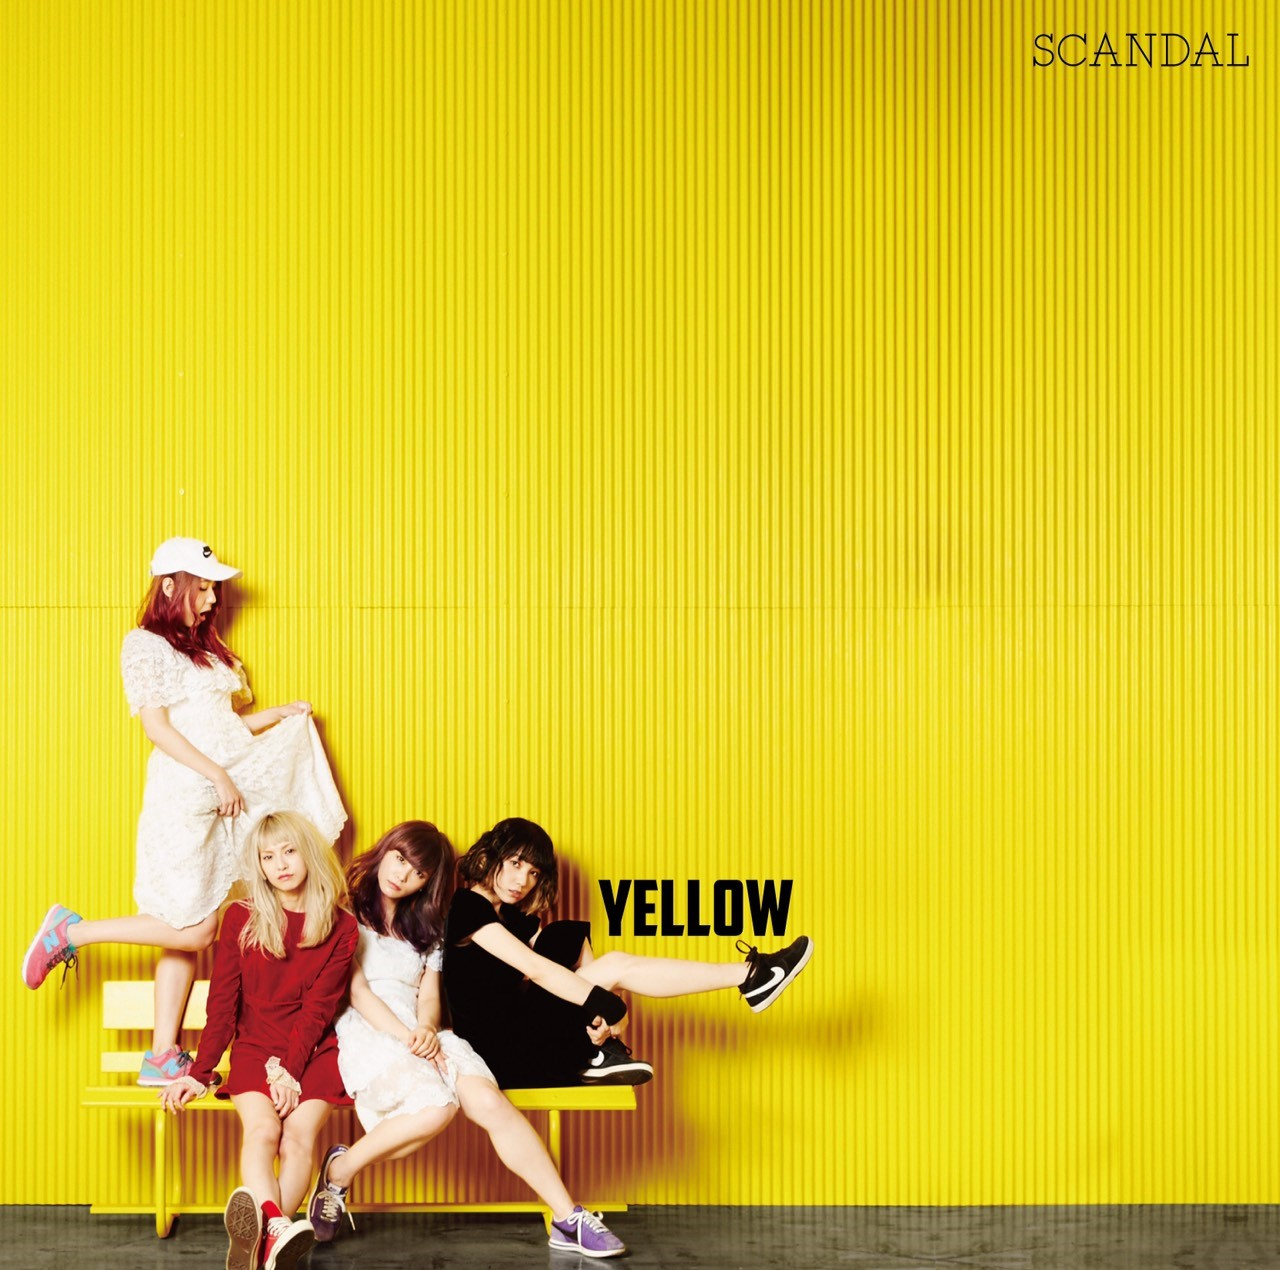 SCANDAL-Yellow-Regular